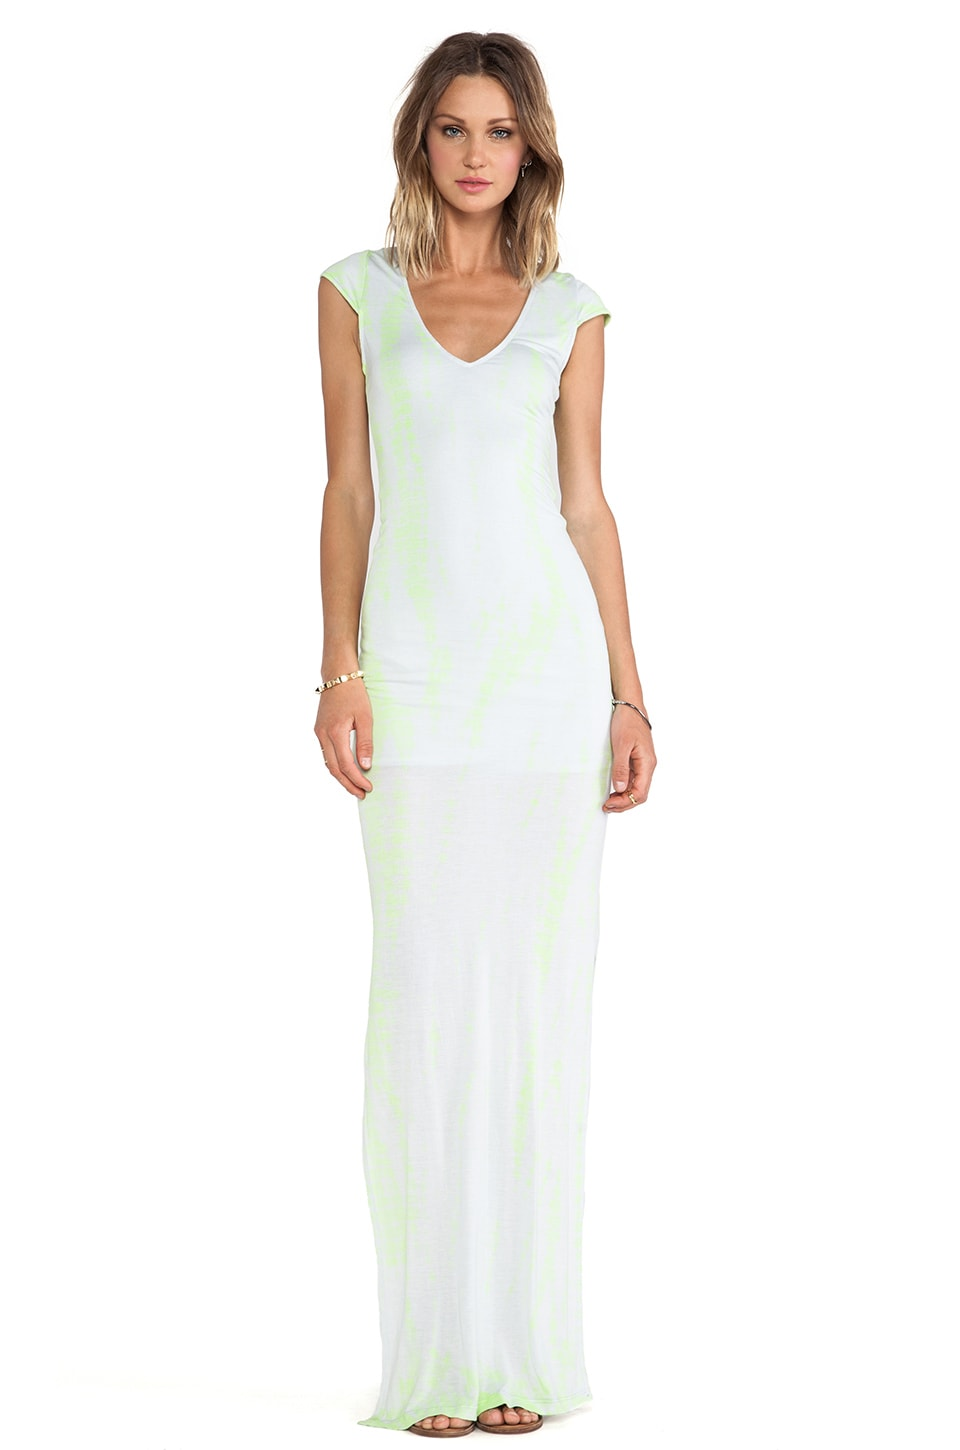 WOODLEIGH Aphrodite Maxi Dress in Neon Yellow